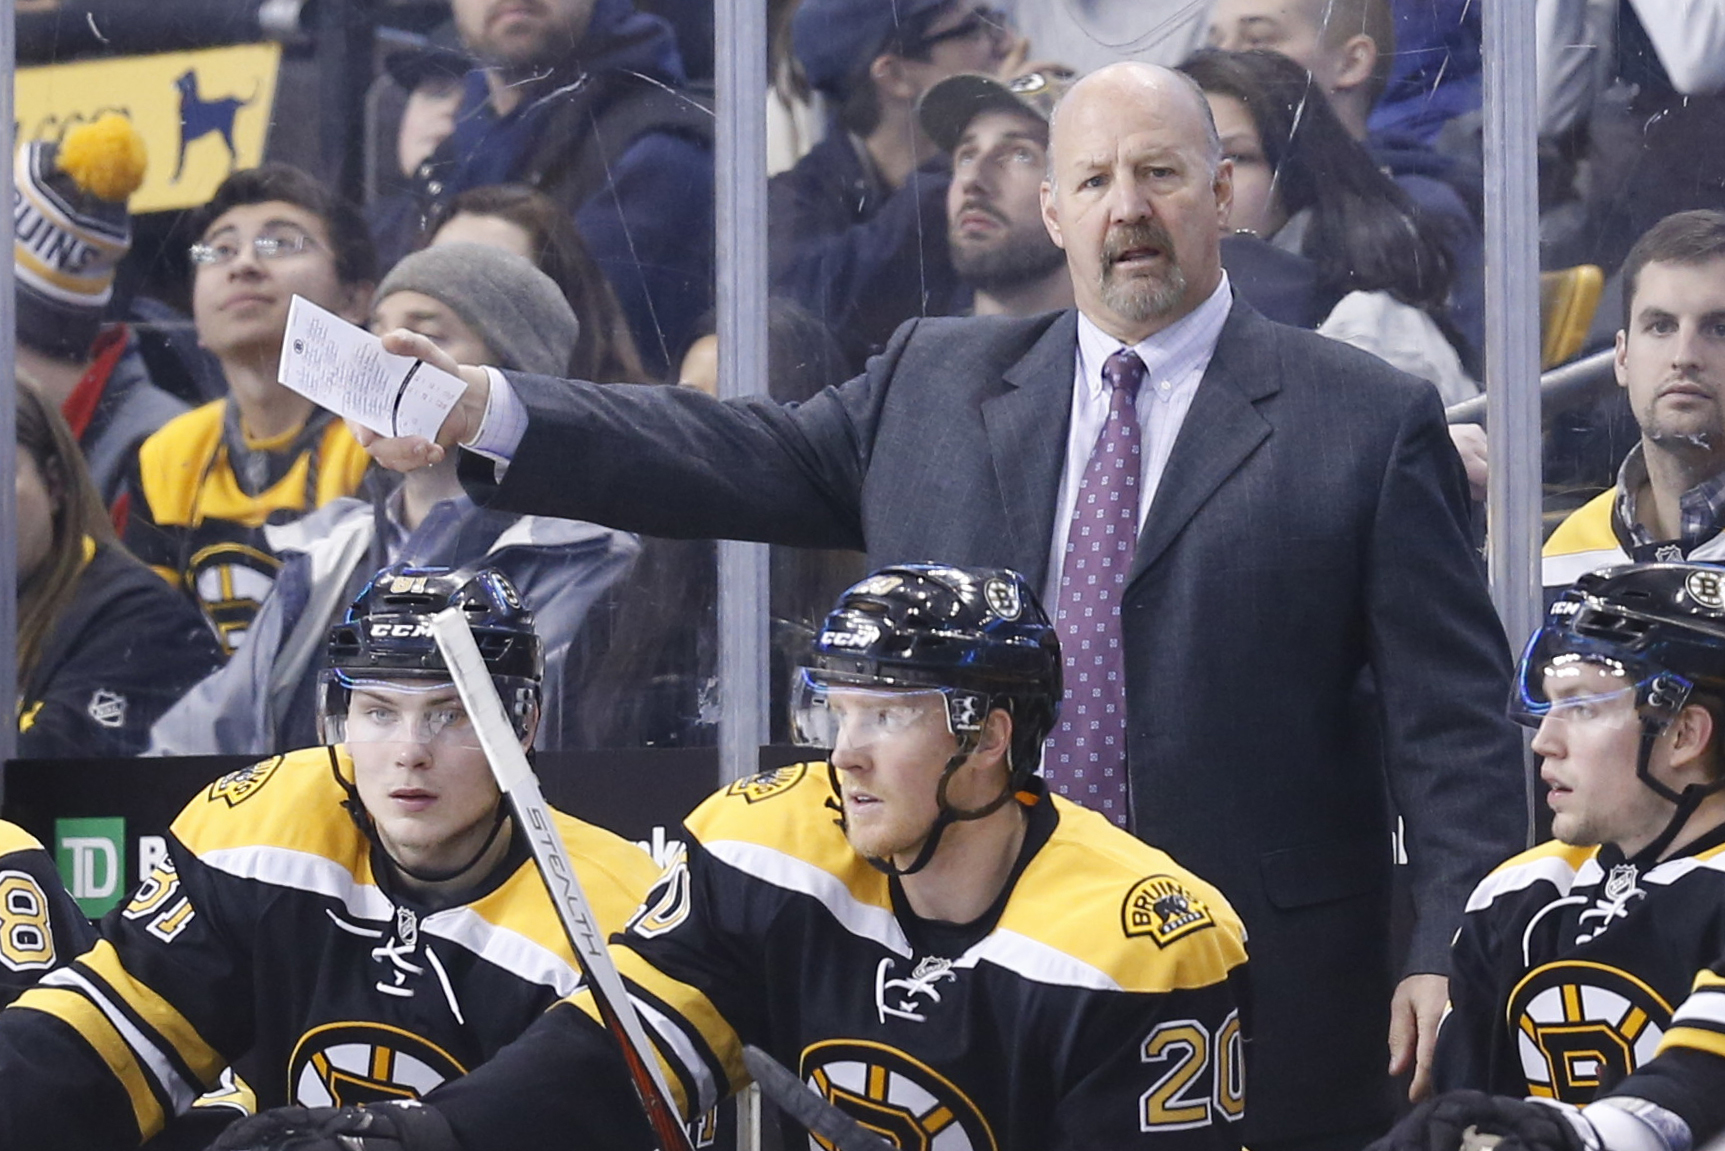 Claude Julien Needs to be Fired